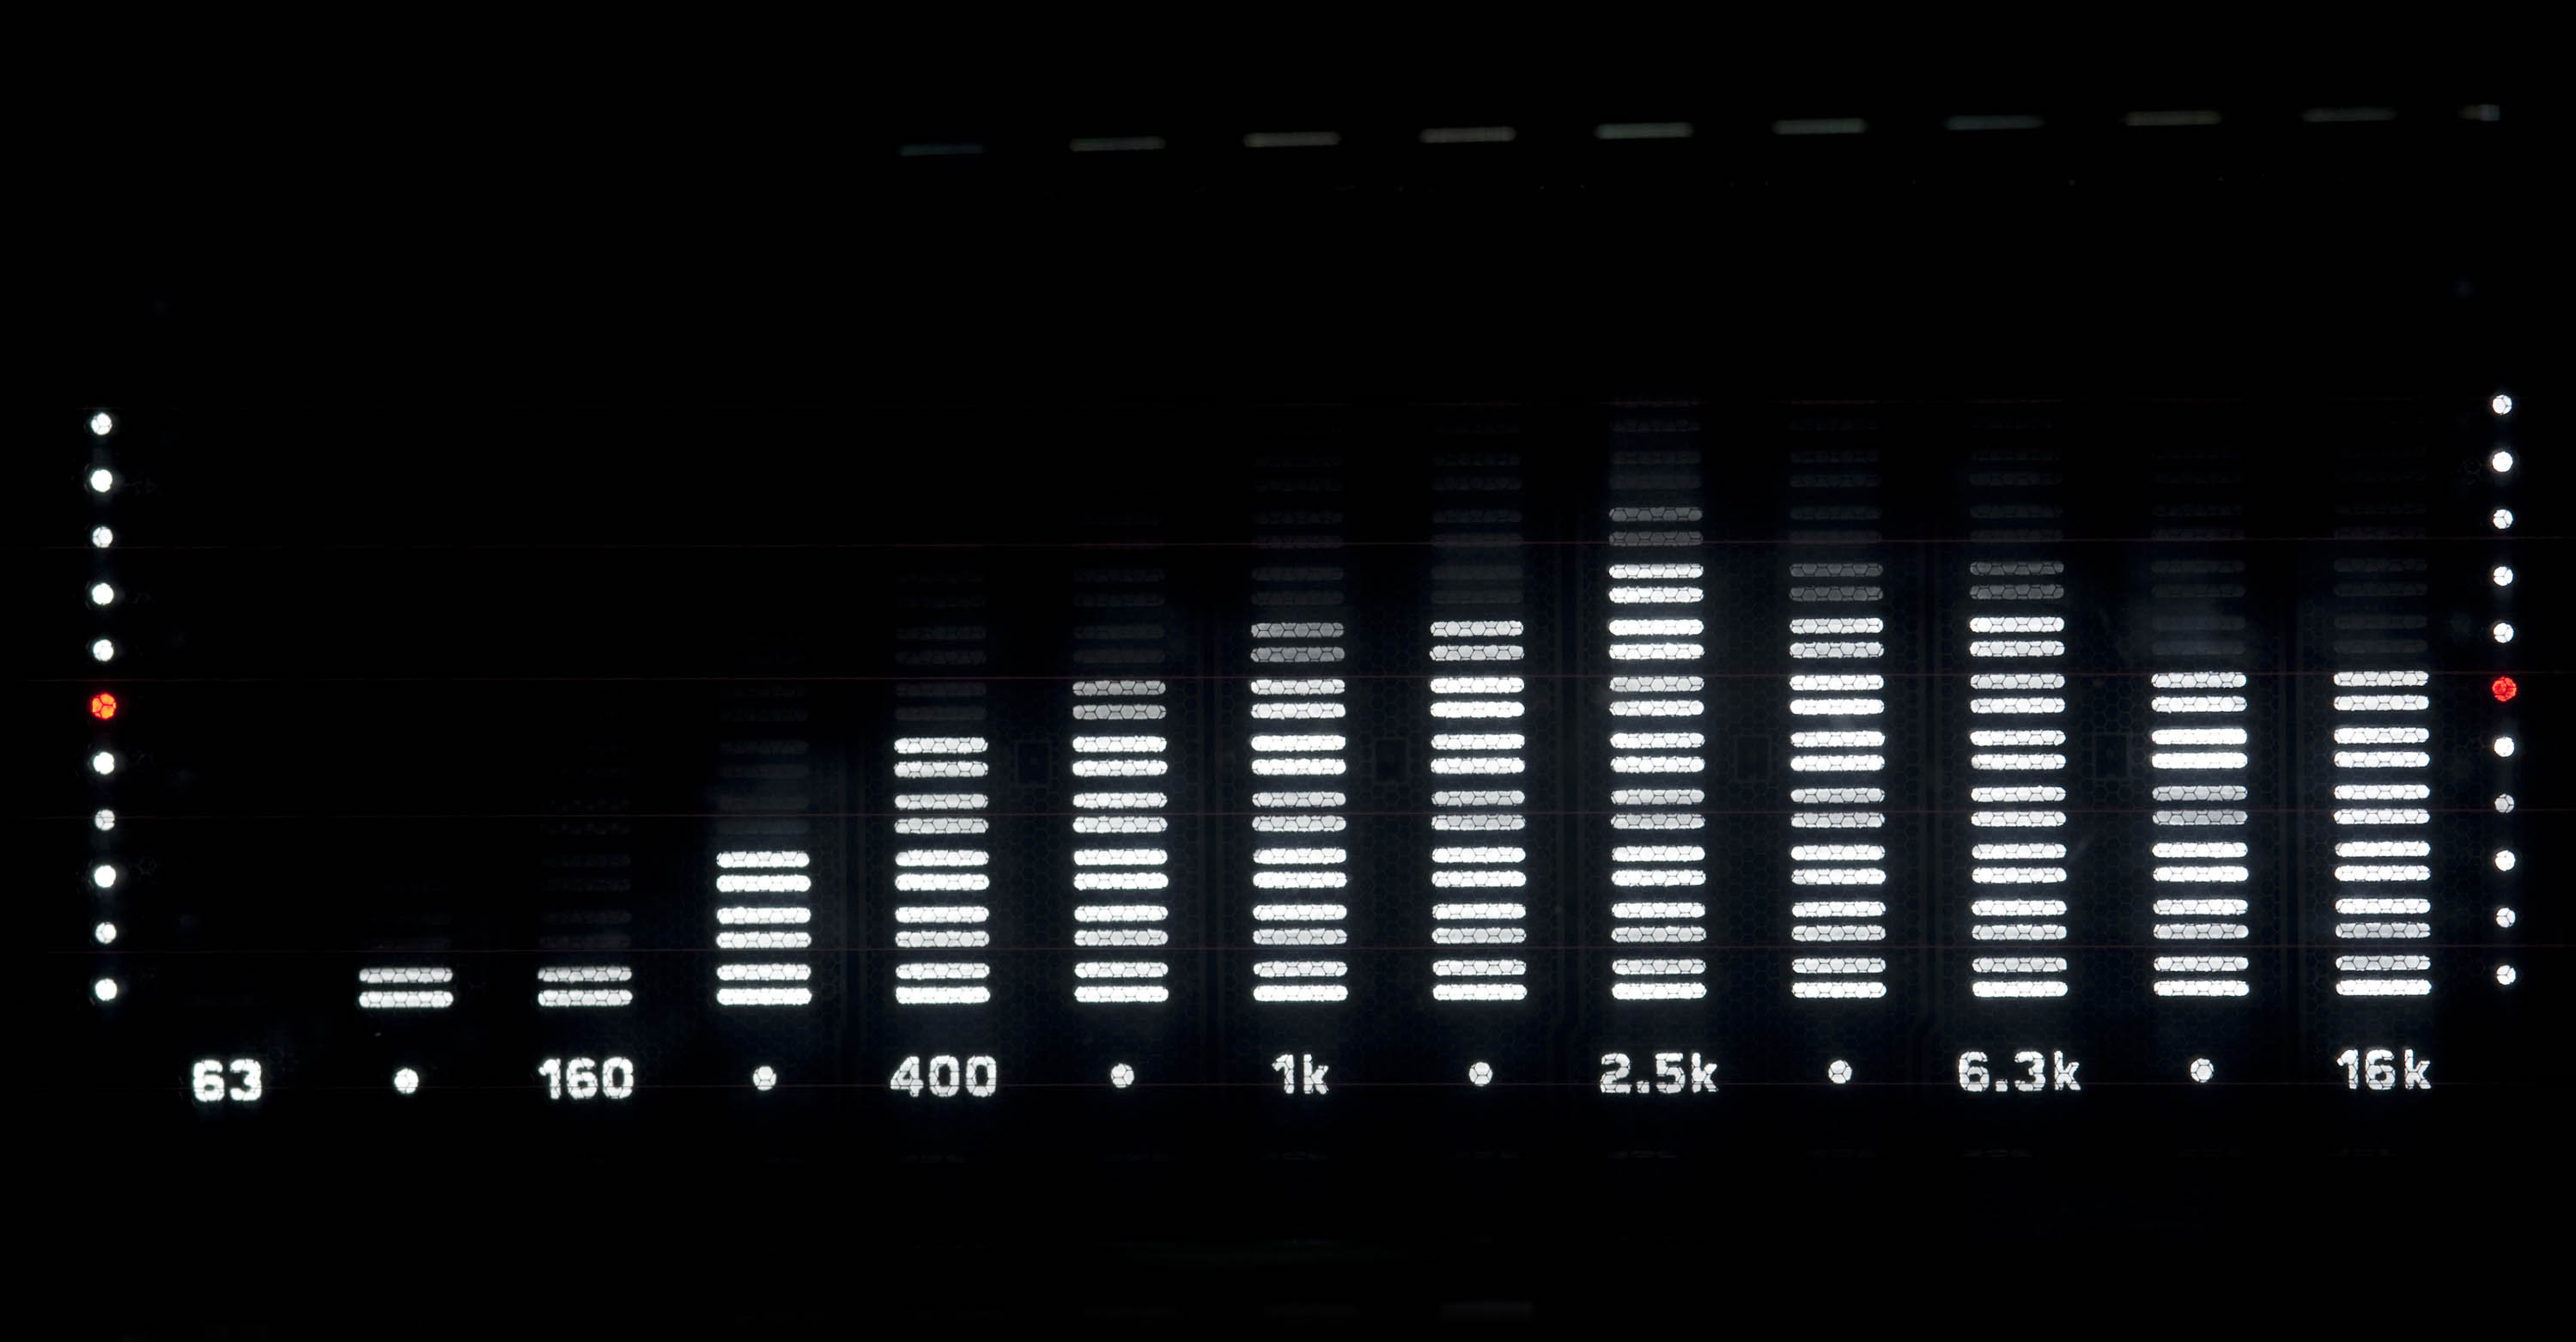 spectrum analyser frequencies